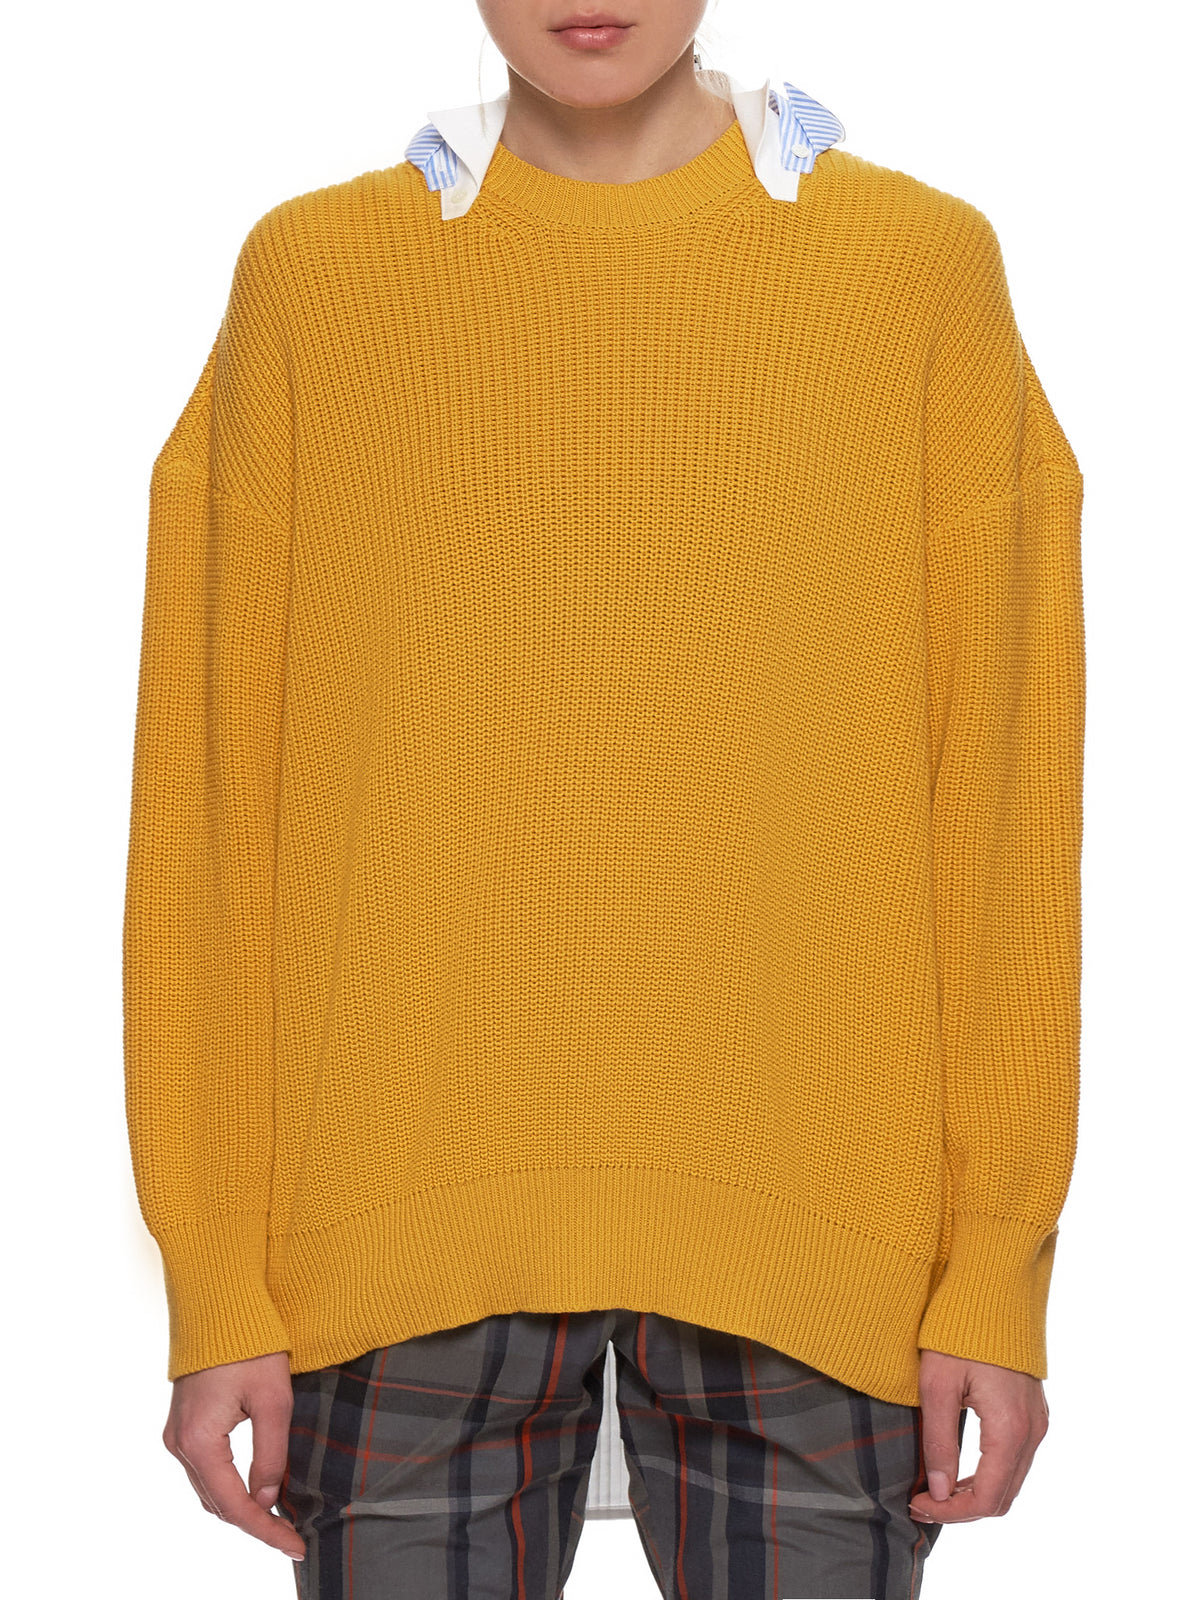 Undercover Sweater - Hlorenzo Front